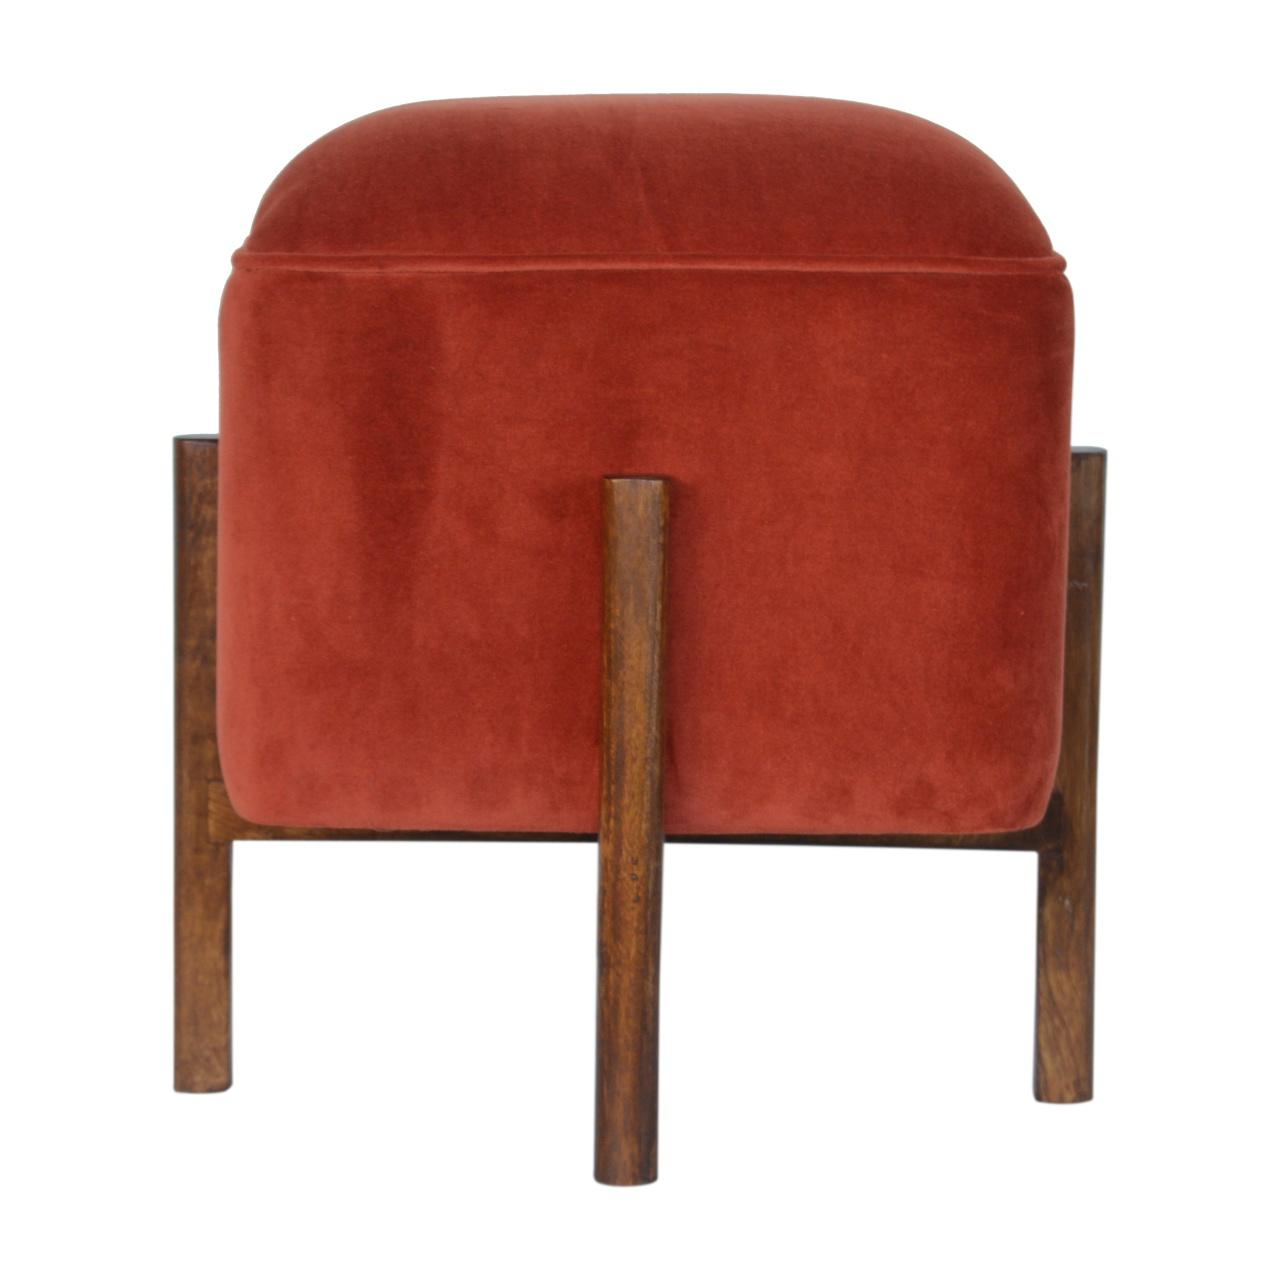 Brick Red Velvet Footstool with Solid Wood Legs